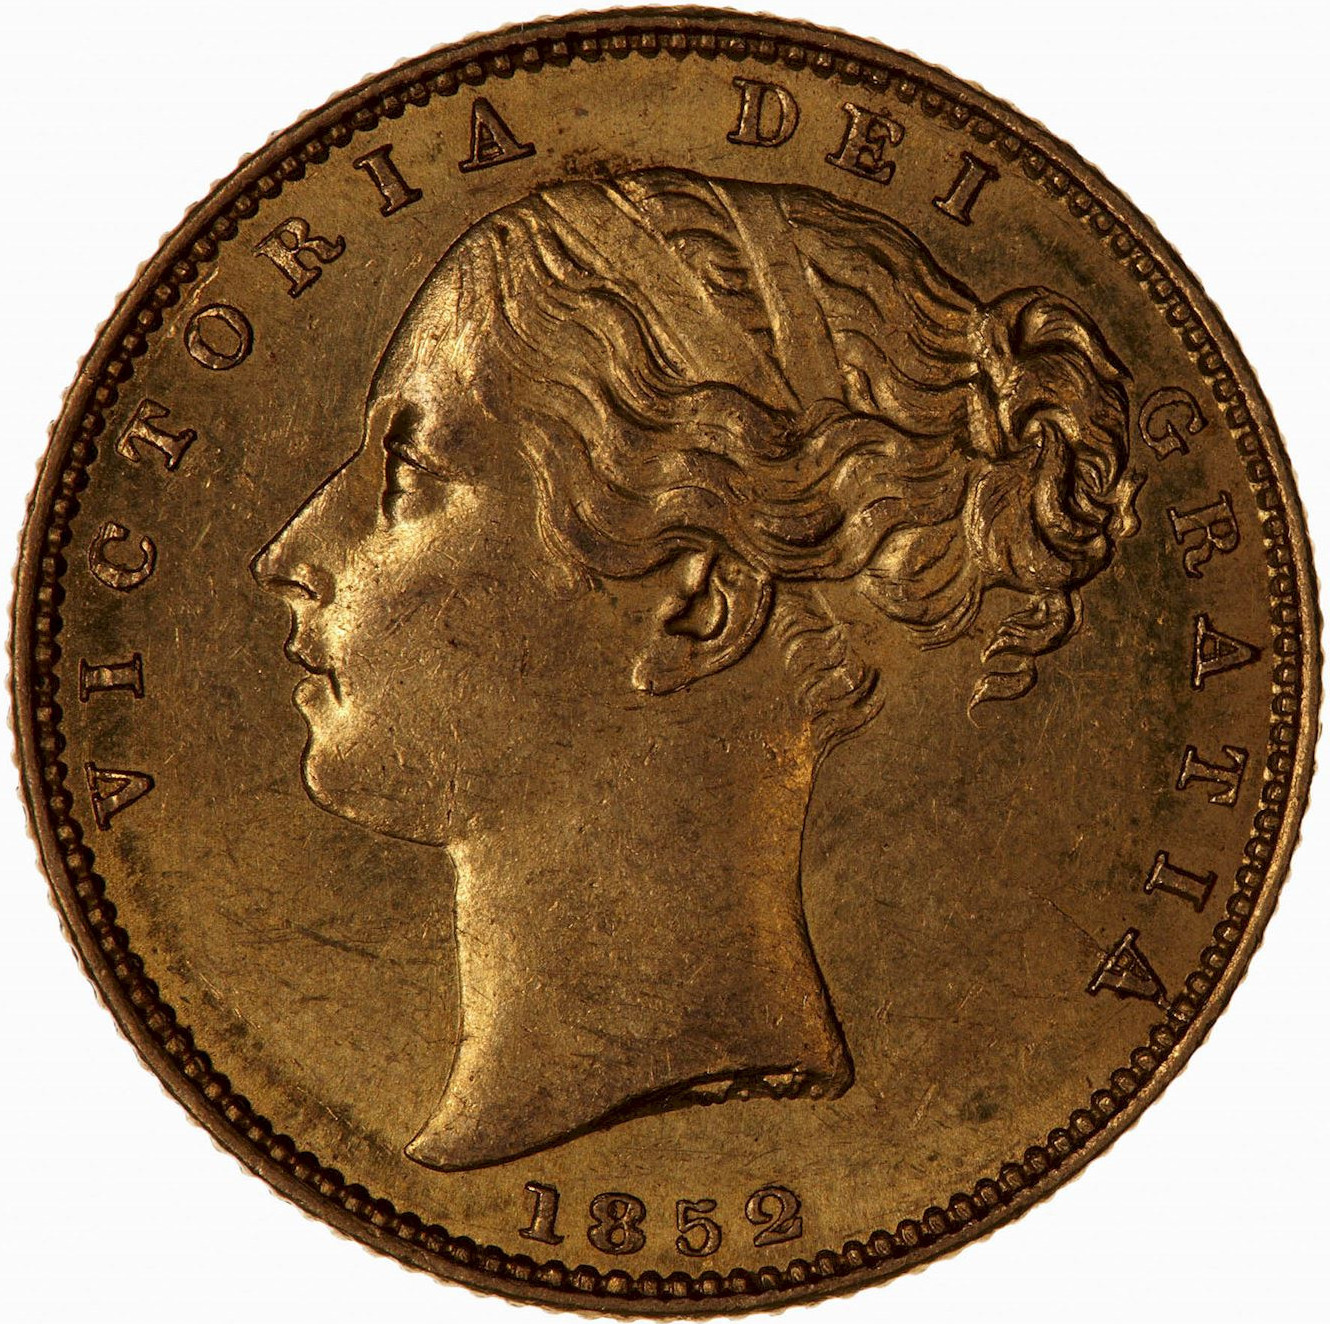 Sovereign (Pre-Decimal): Photo Coin - Sovereign, Queen Victoria, Great Britain, 1852